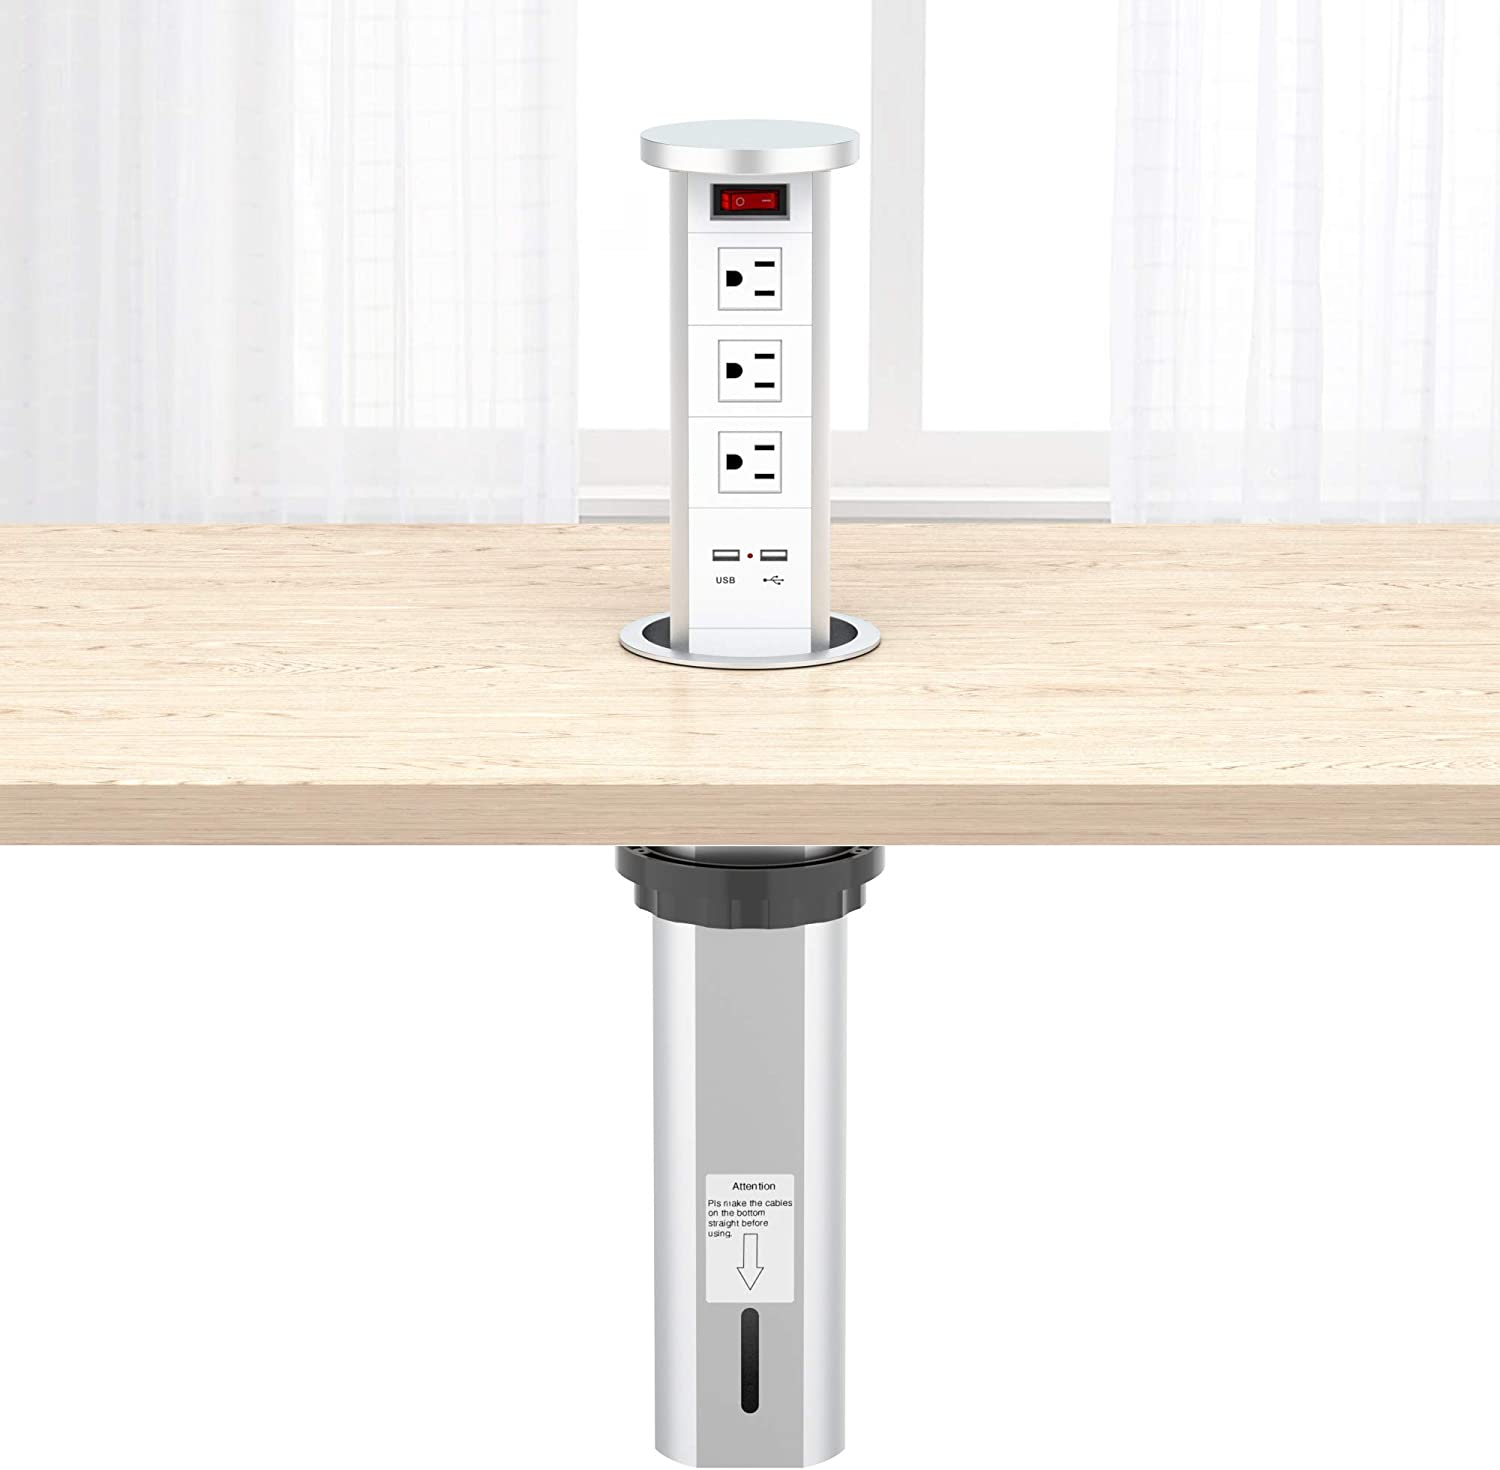 Buy Automatic Raising Type Surge Protector Pop Up Outlet Retractable Hidden Recessed Power Strip Power Socket With 2 Usb Charging Stations And 3 Ac Plug For Kitchen Island Counter Top Conference Table Online